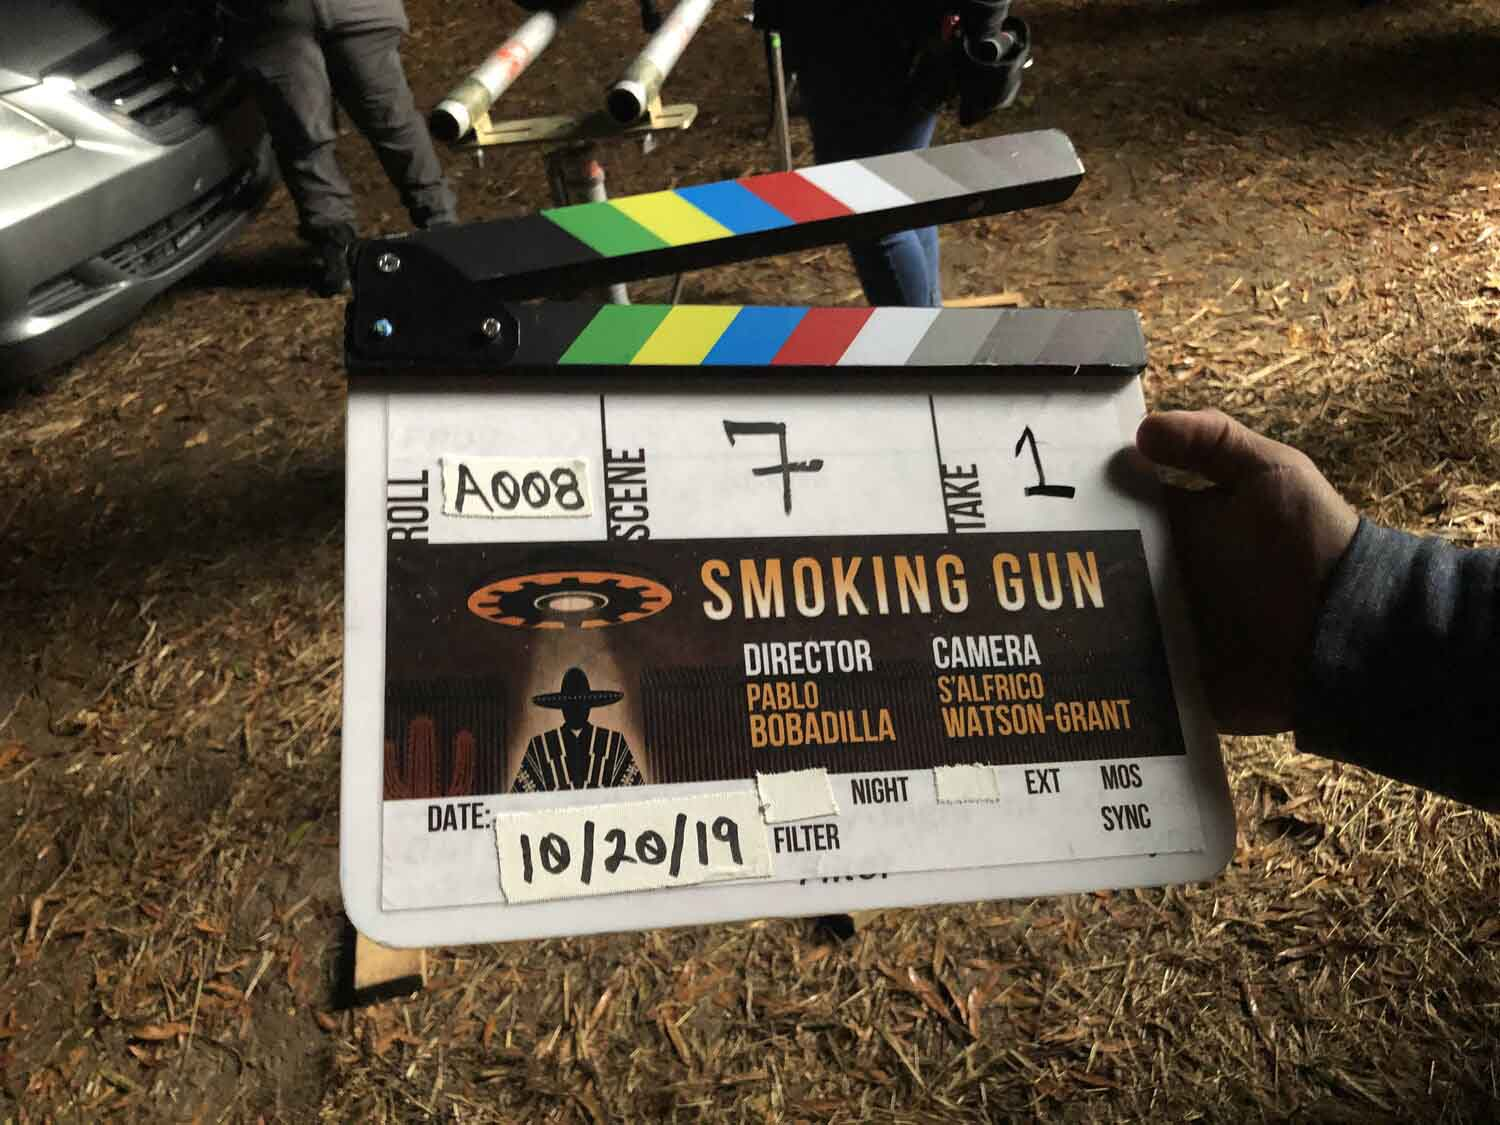 Pablo Bobadilla's first foray into the TV world is through the web series 'Smoking Gun'. But it's not just some boring old sci-fi show.